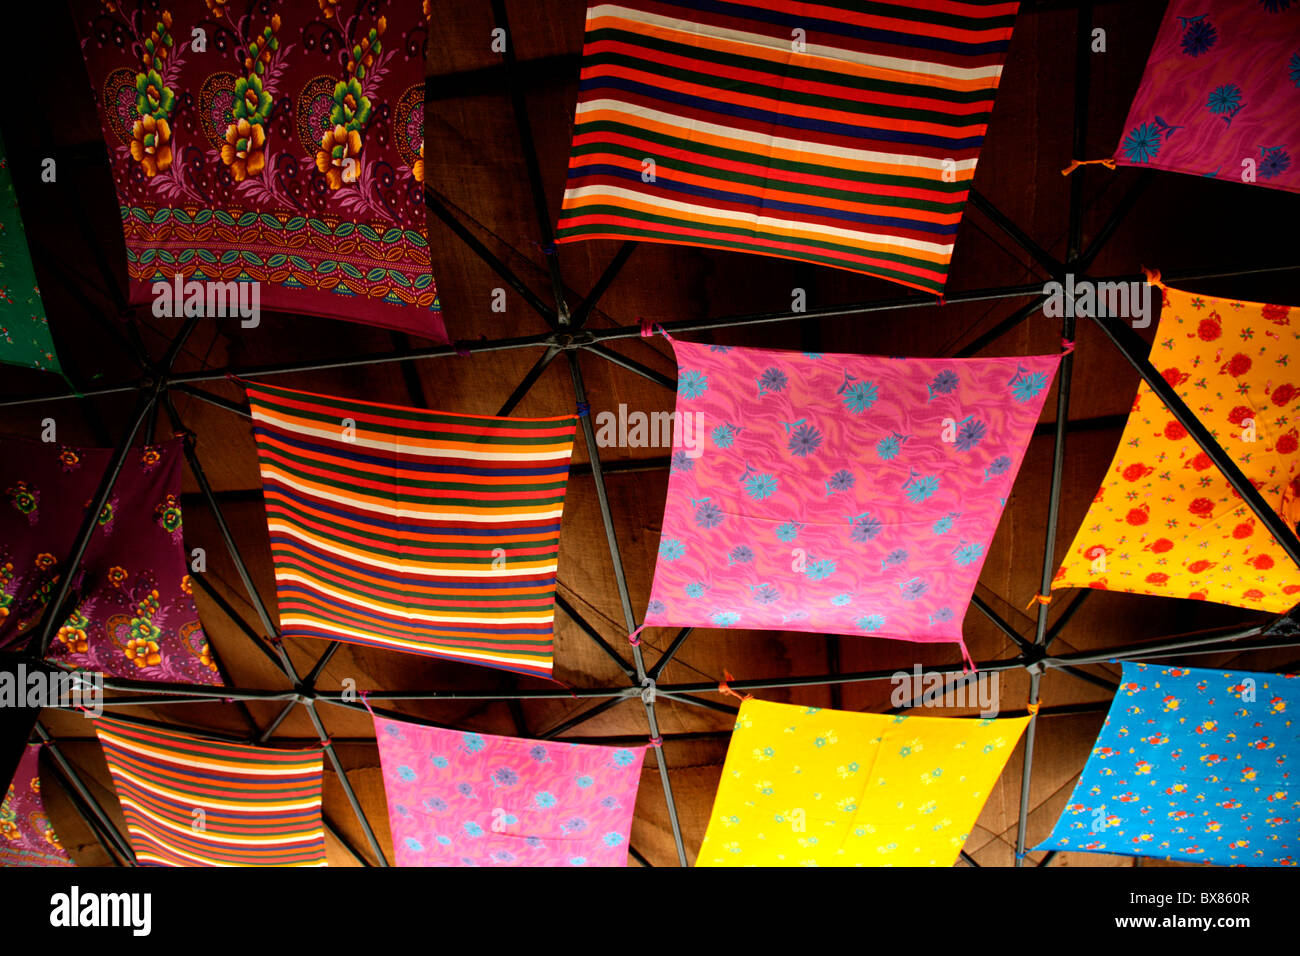 Different design of cloths arranged to decorate a roof ceiling  inside the house - Stock Image